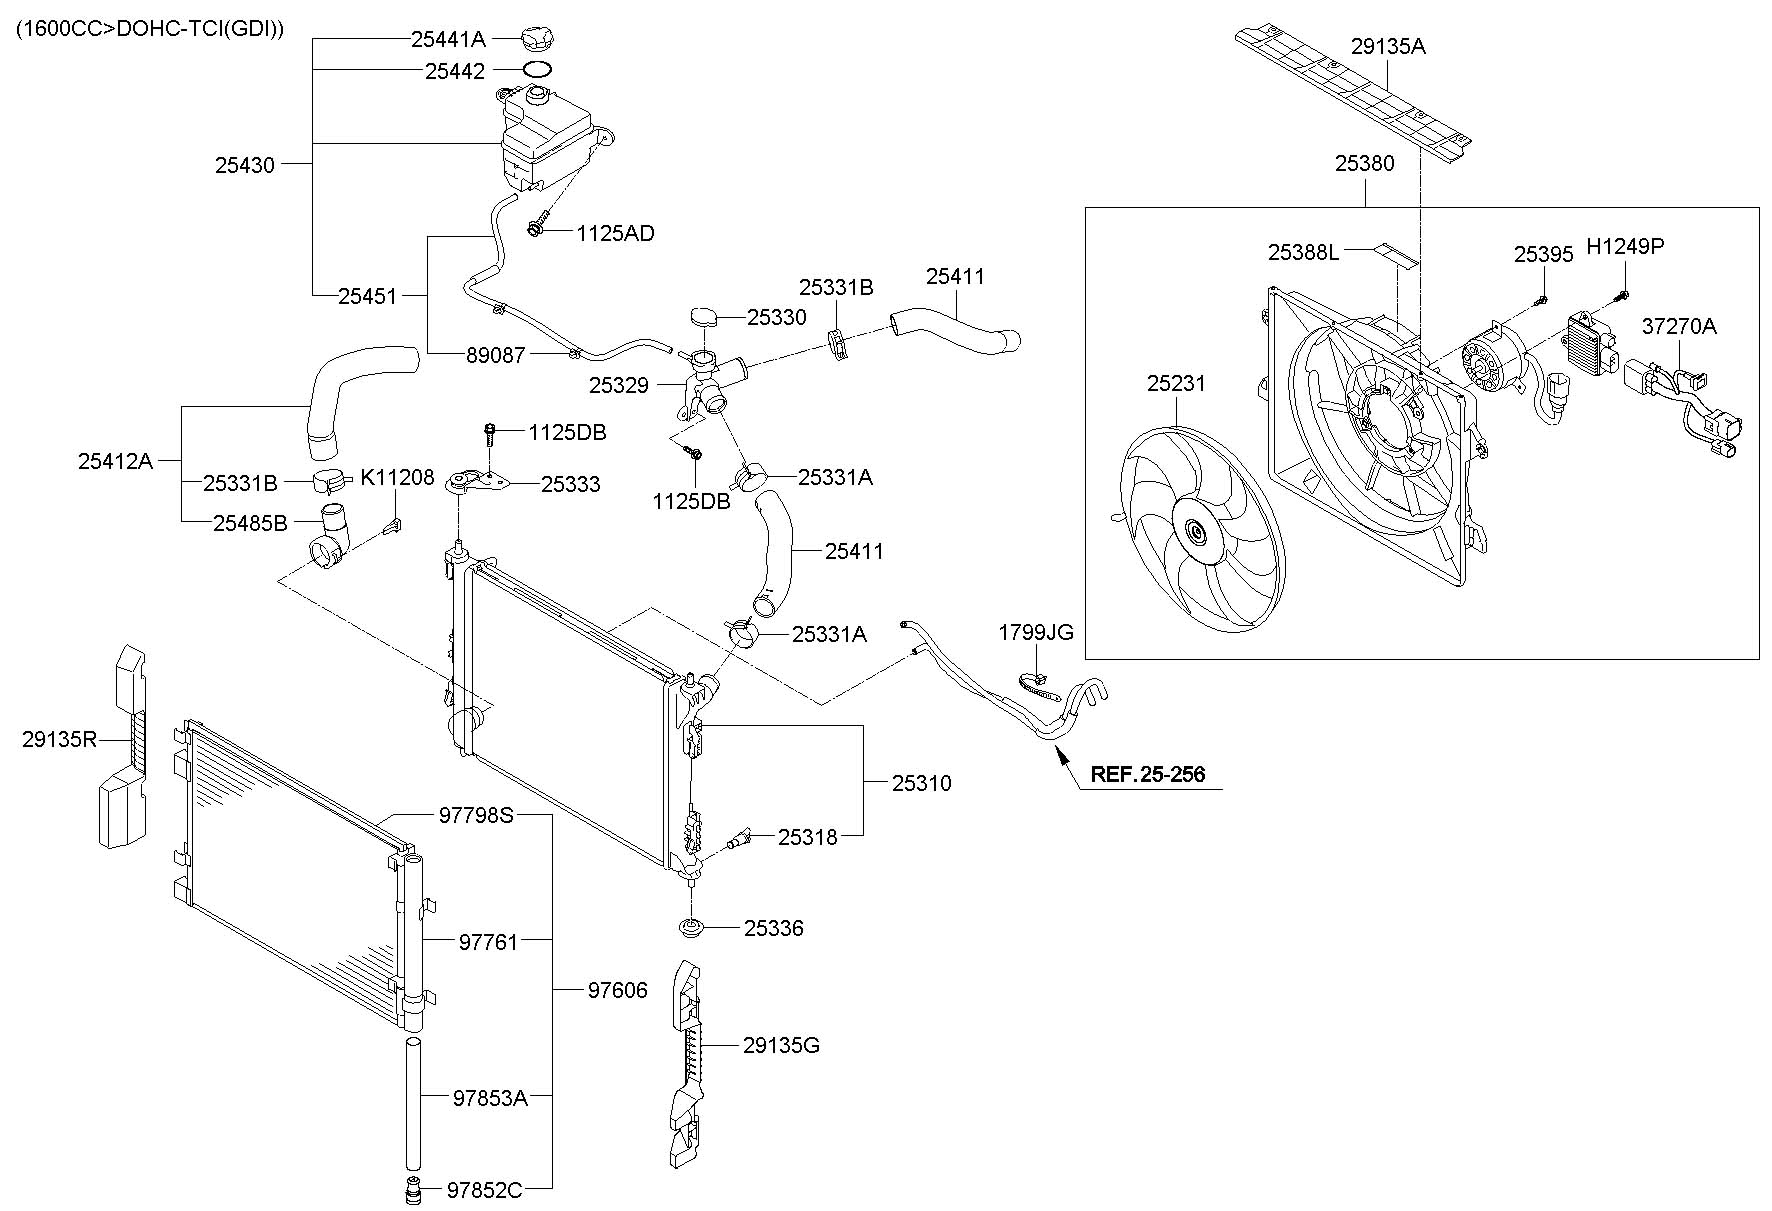 2011 Hyundai VELOSTER COOLING SYSTEM